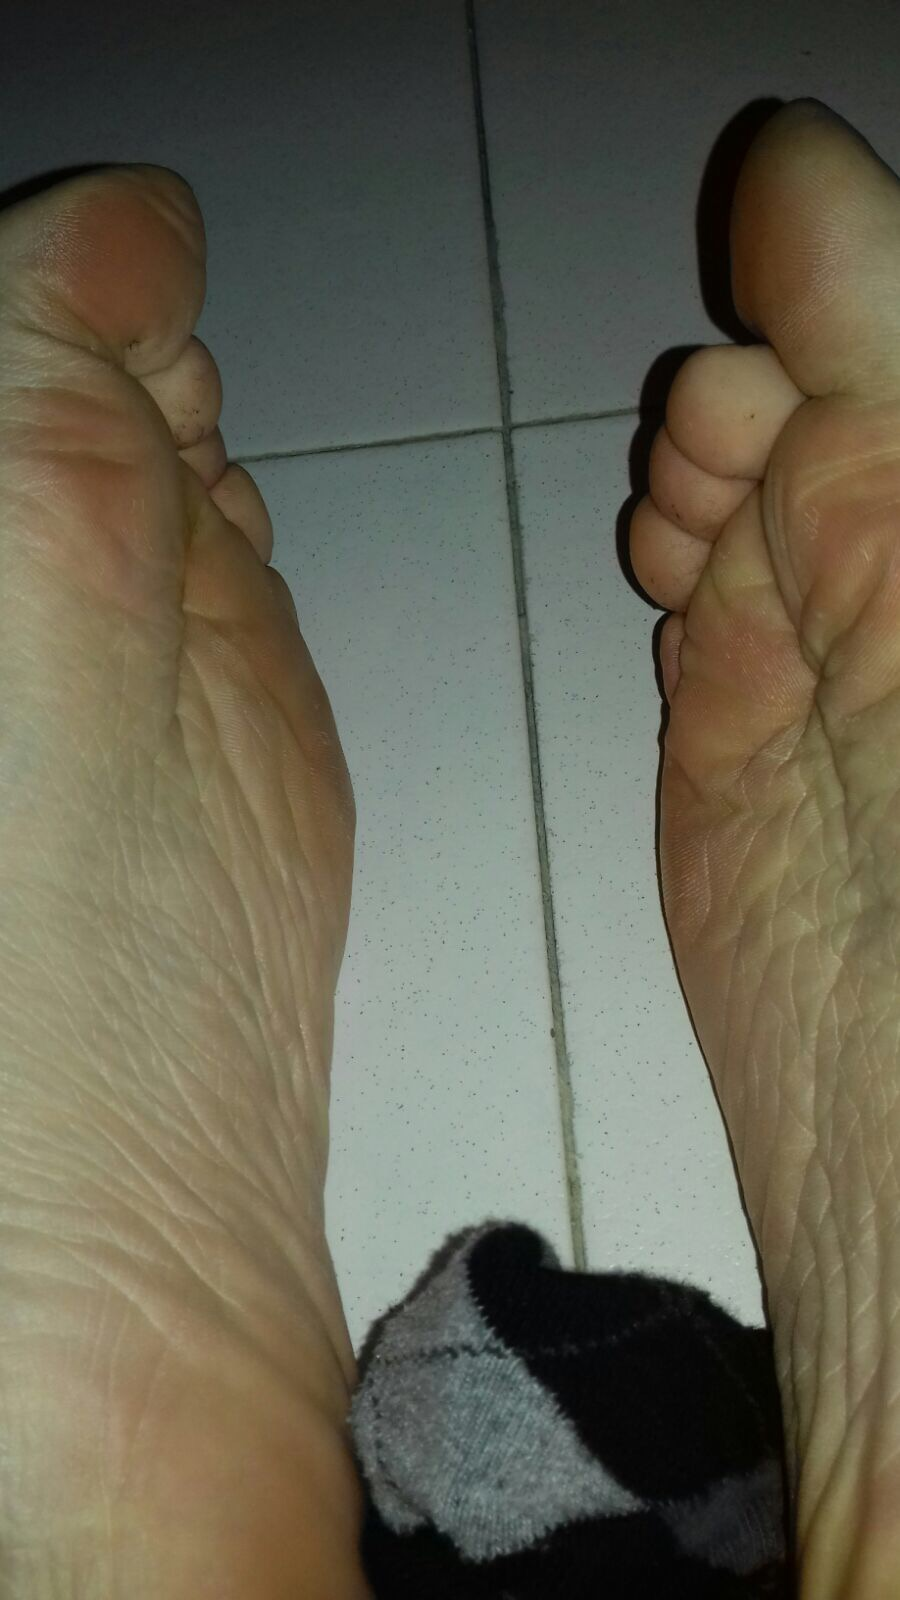 Fratboyfeet has fantasies, shows his feet